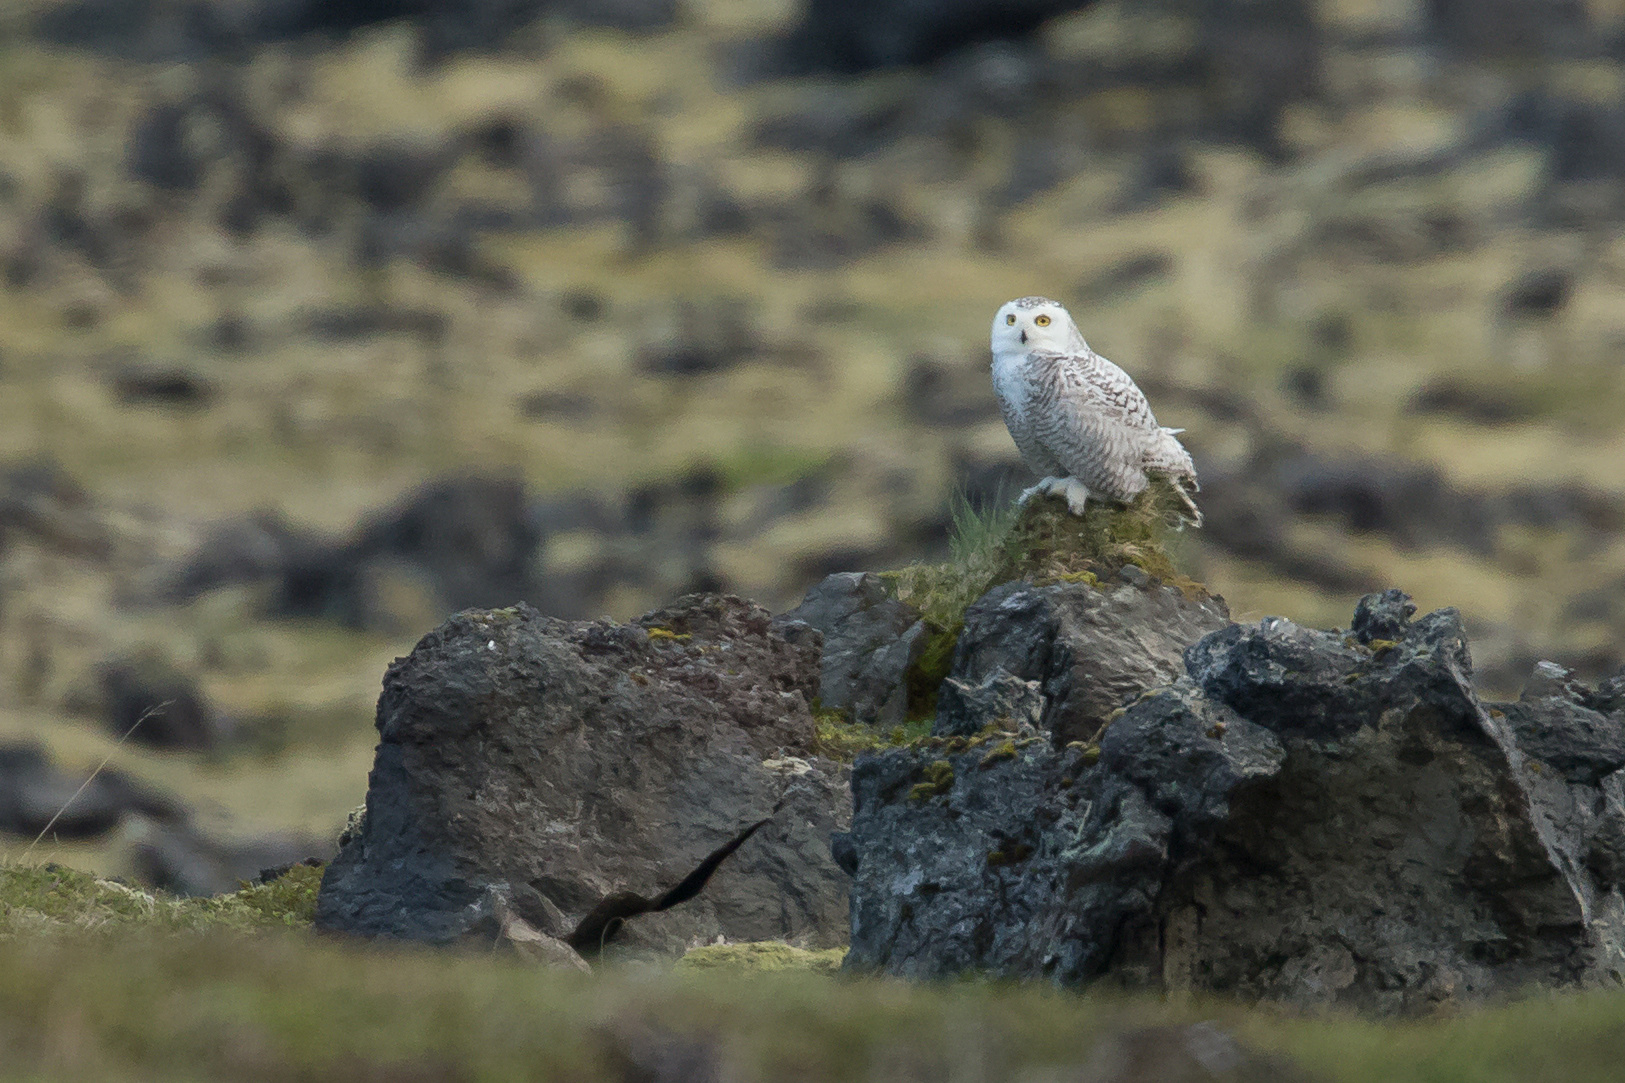 A Snowy Owl 'in the middle of nowhere' was probably our most exciting find.